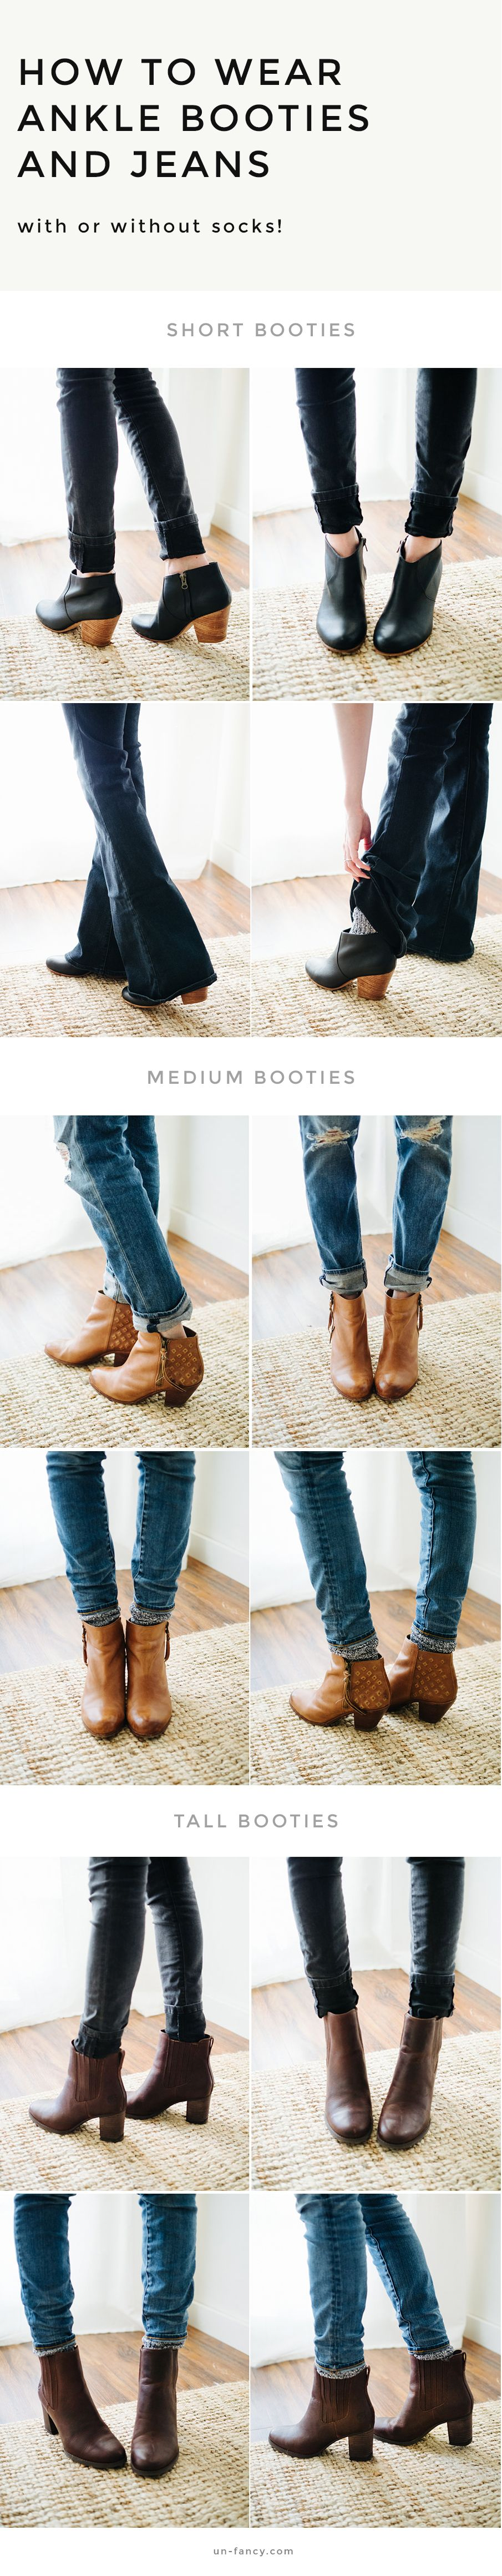 f45728c530a How to wear ankle booties with jeans   part II  socks!